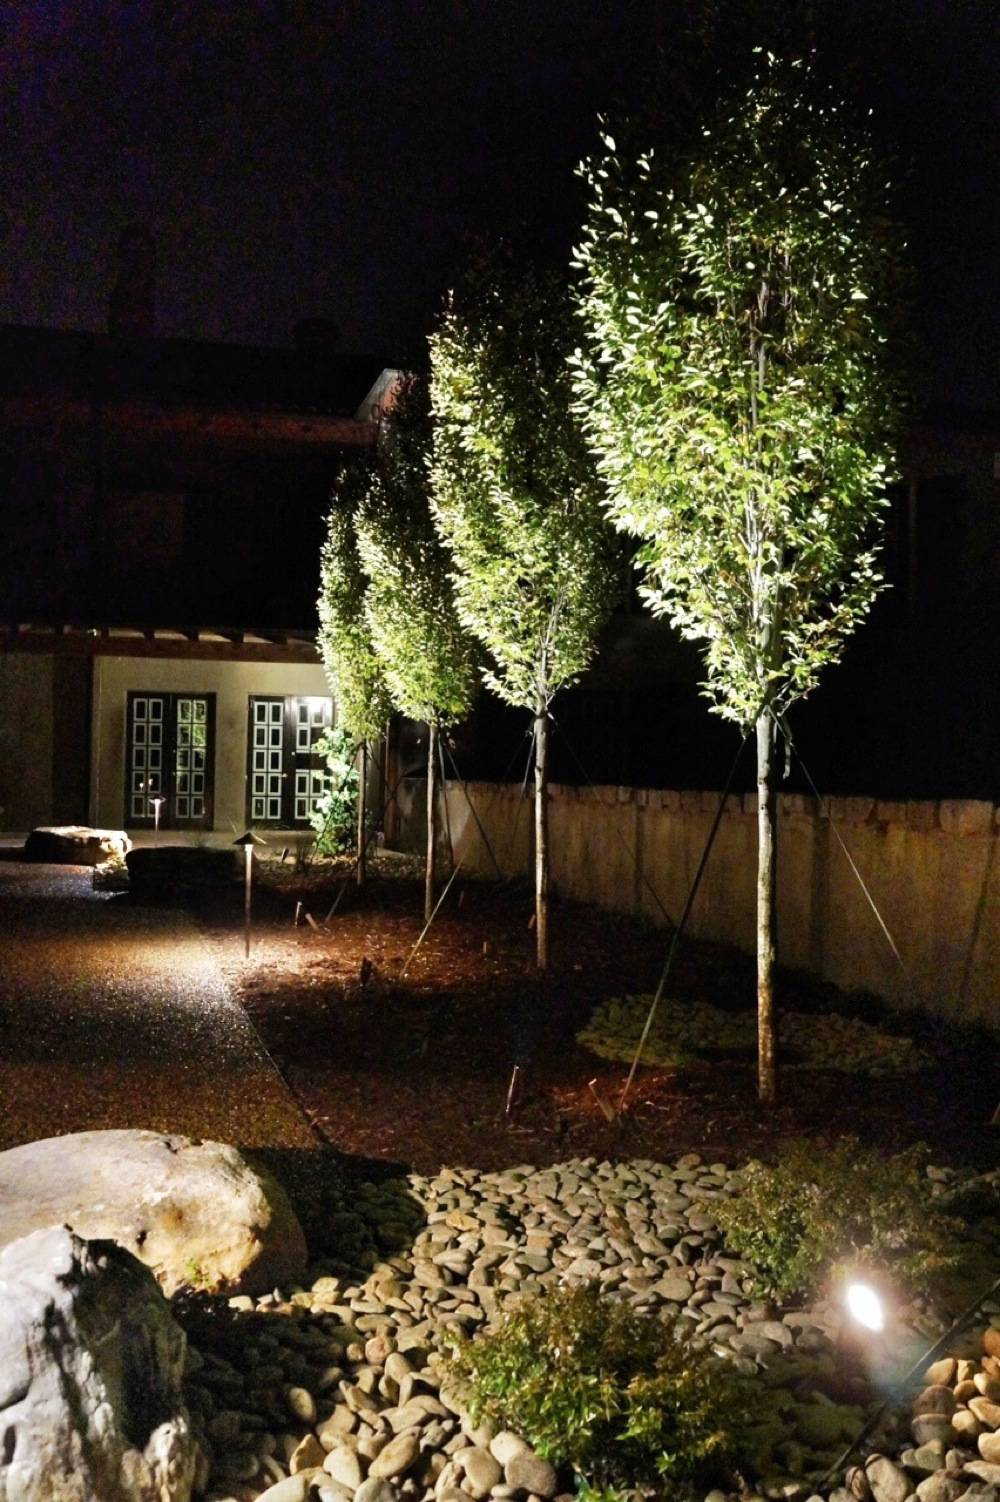 La Bastide night pic hornbeams.JPG